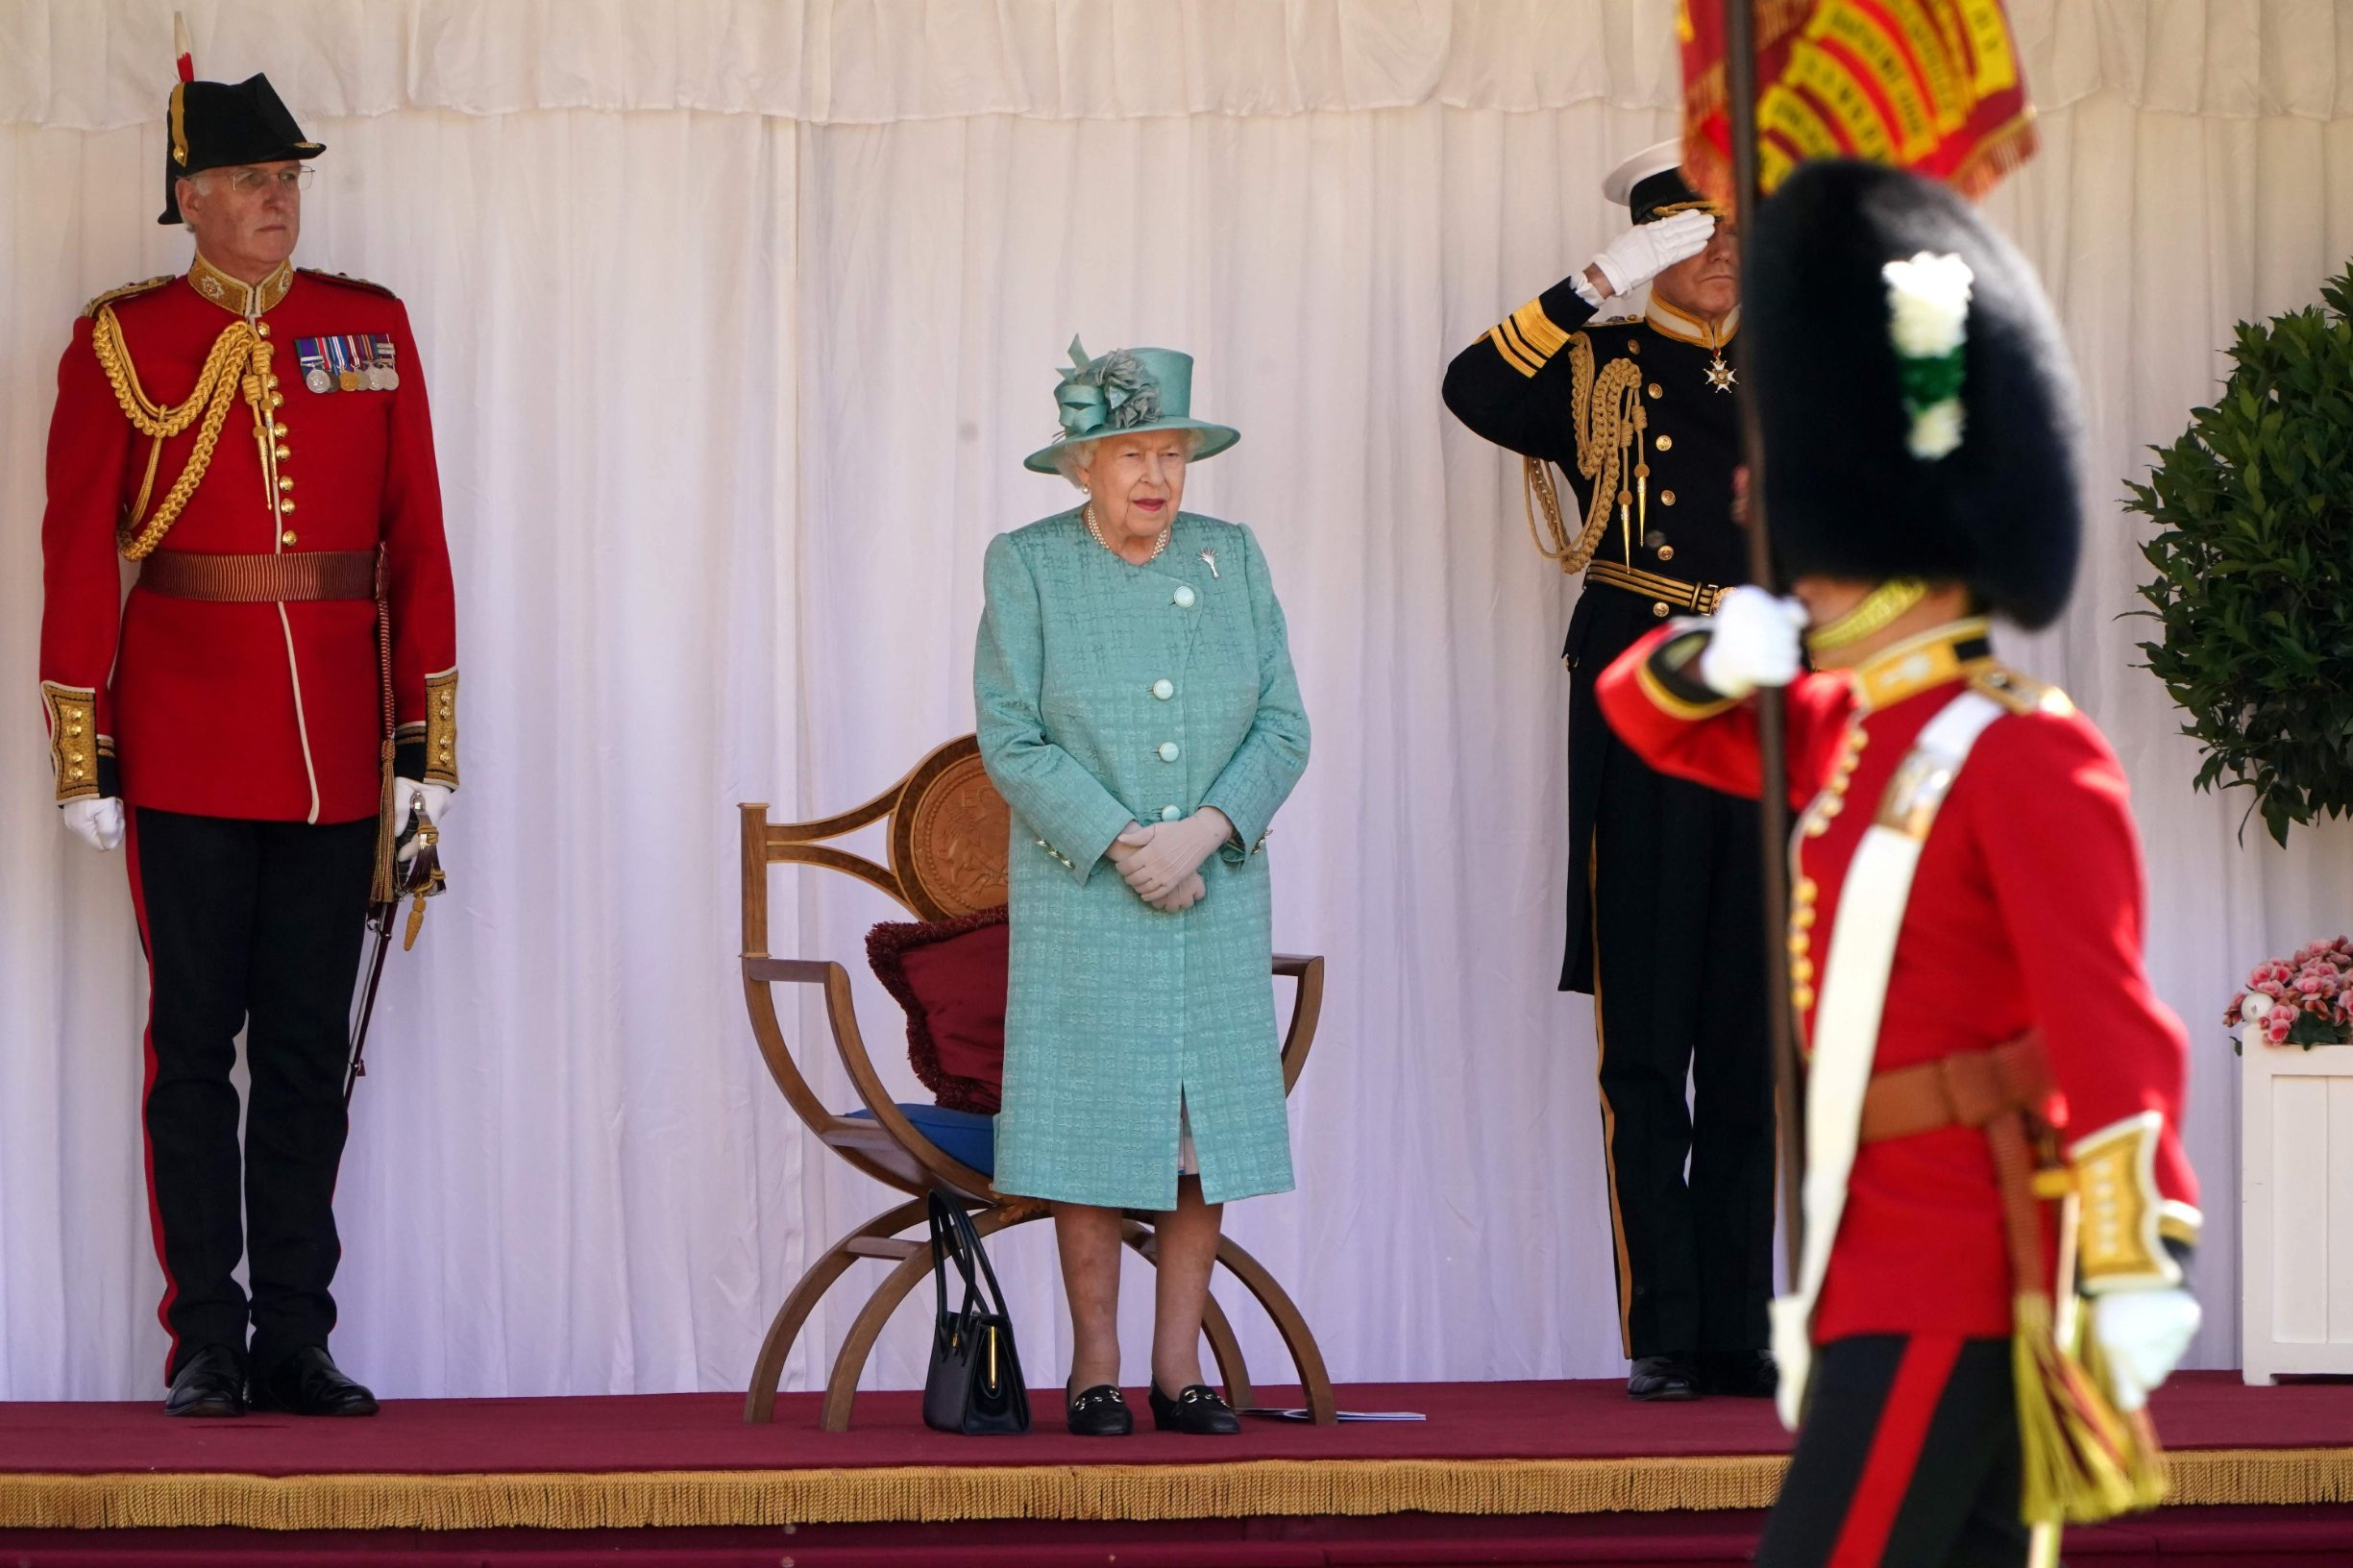 Britain's Queen Elizabeth II attends a ceremony to mark her official birthday at Windsor Castle in Windsor, southeast England on June 13, 2020, as Britain's Queen Elizabeth II celebrates her 94th birthday this year. (Photo by Paul EDWARDS / POOL / AFP)